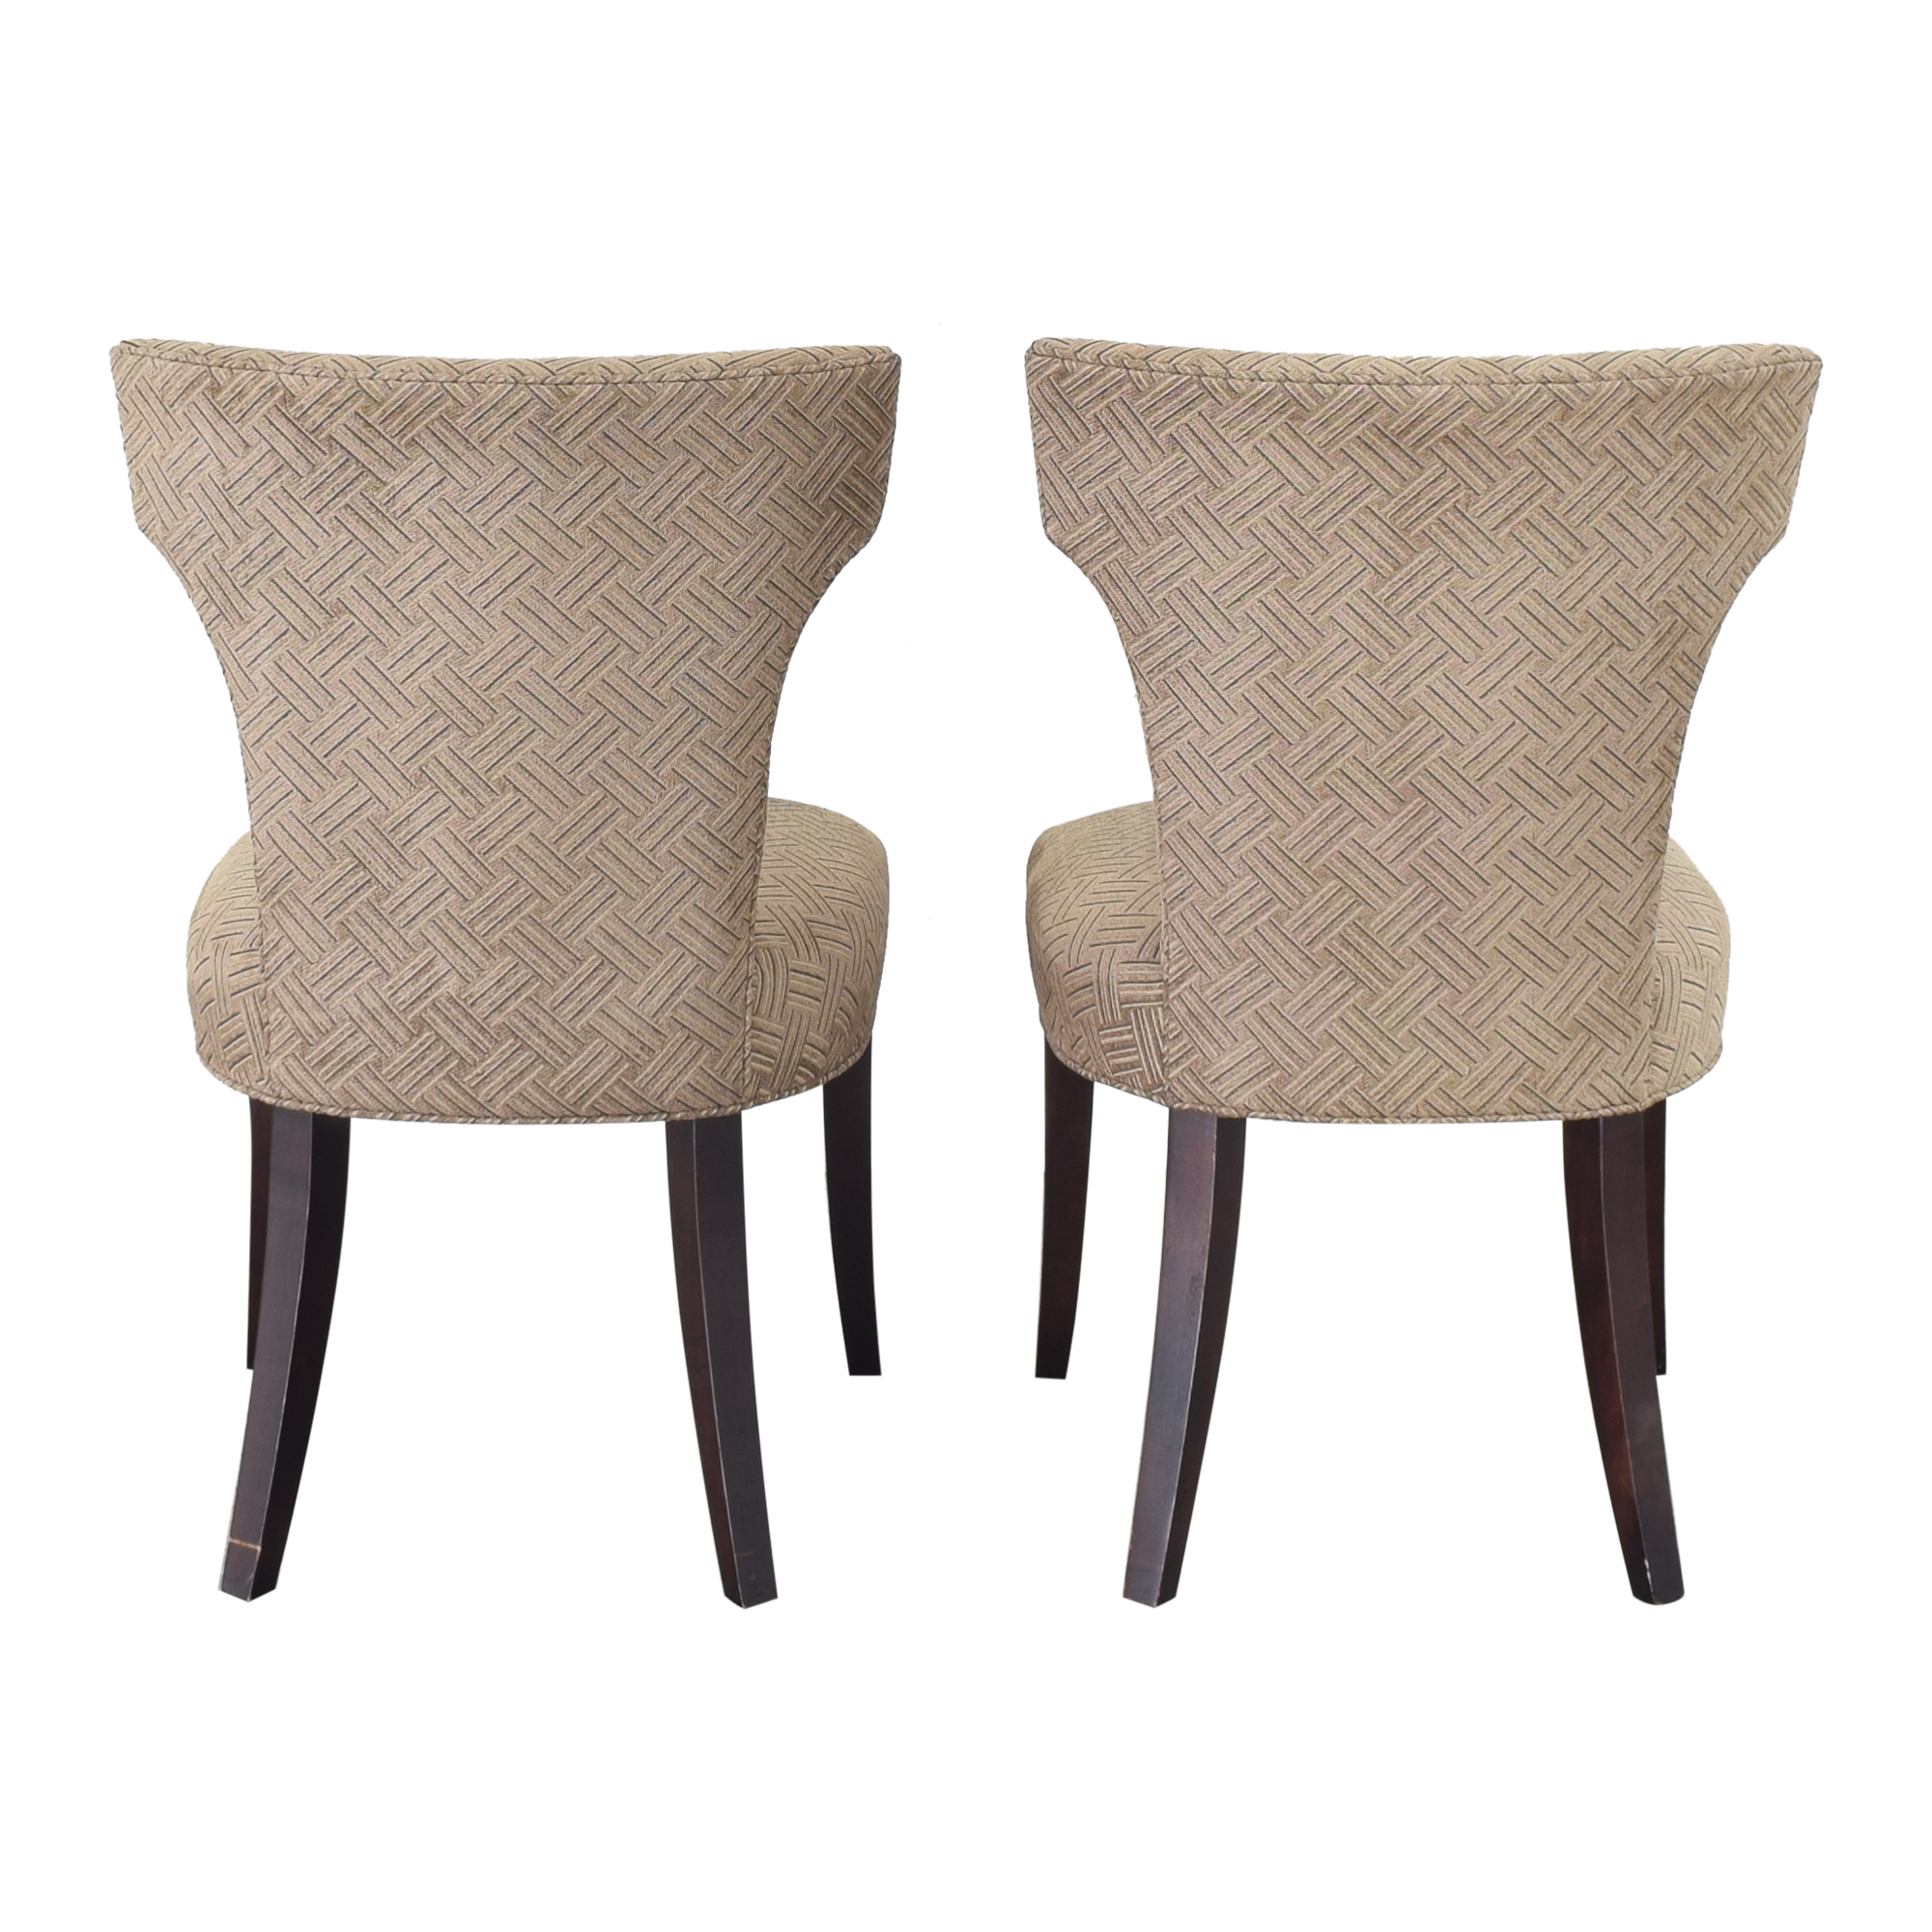 Crate & Barrel Crate & Barrel Sasha Upholstered Dining Chairs price